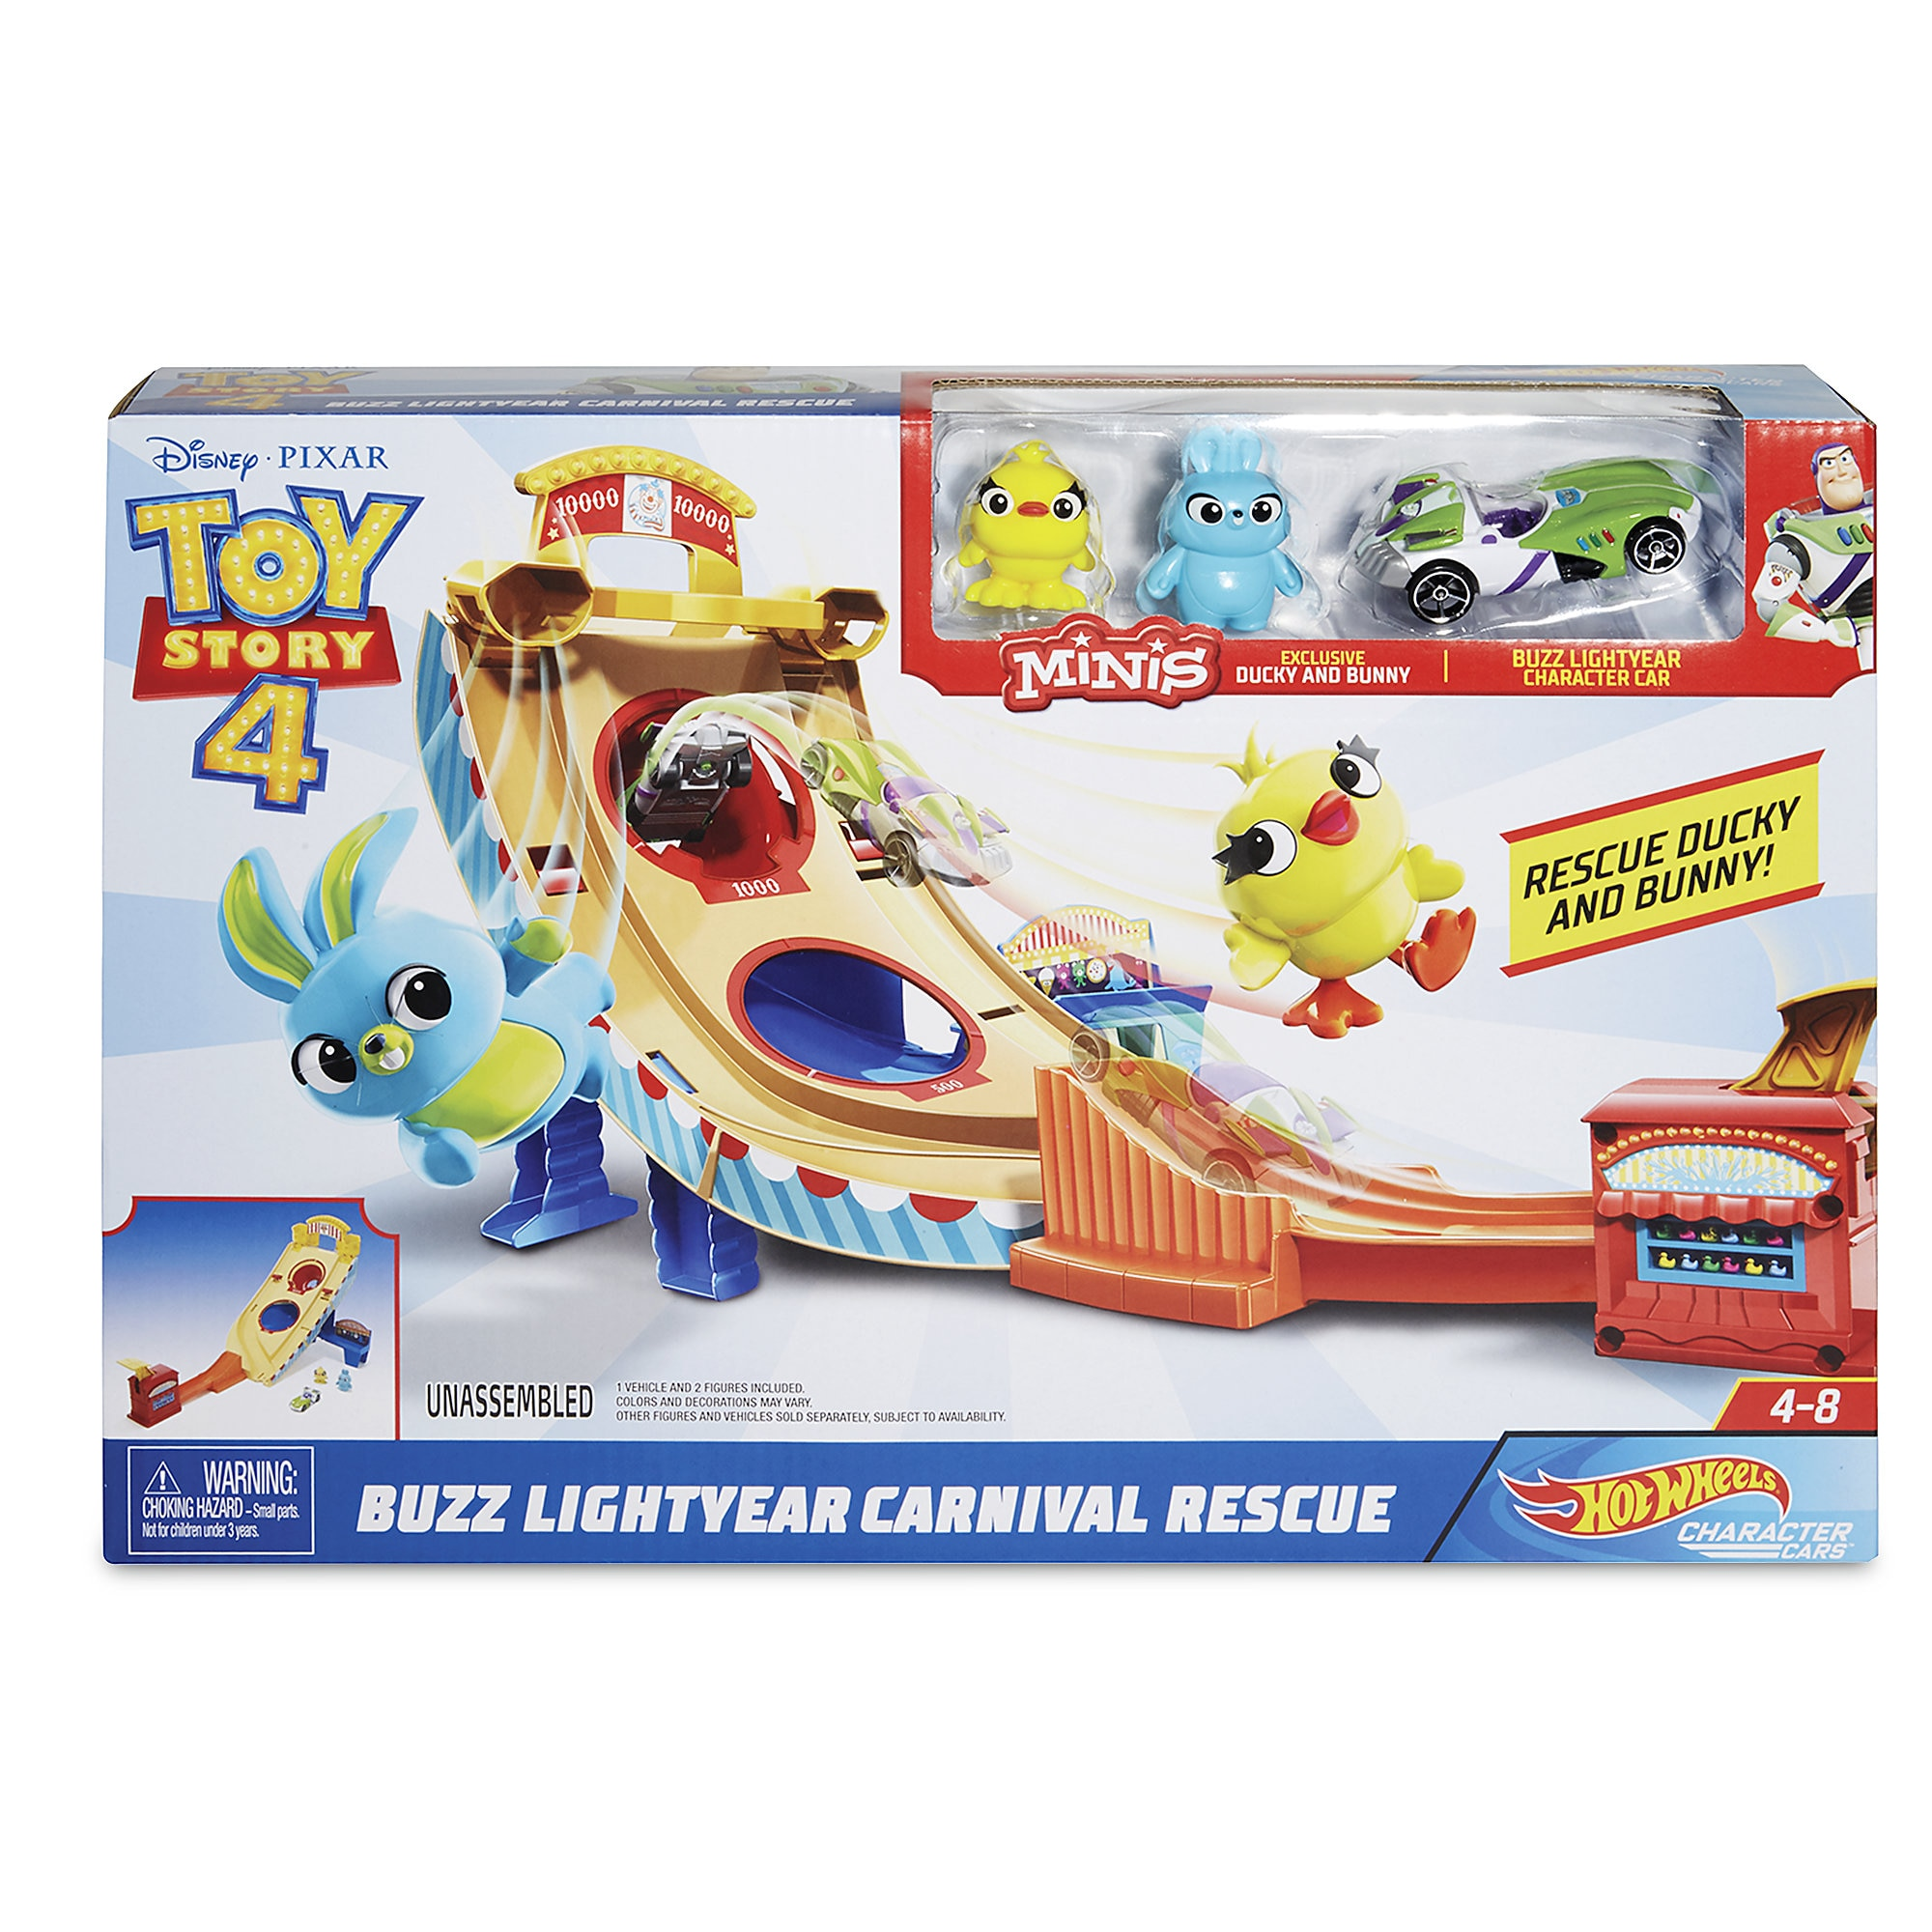 Buzz Lightyear Carnival Rescue Play Set – Toy Story 4 is available online